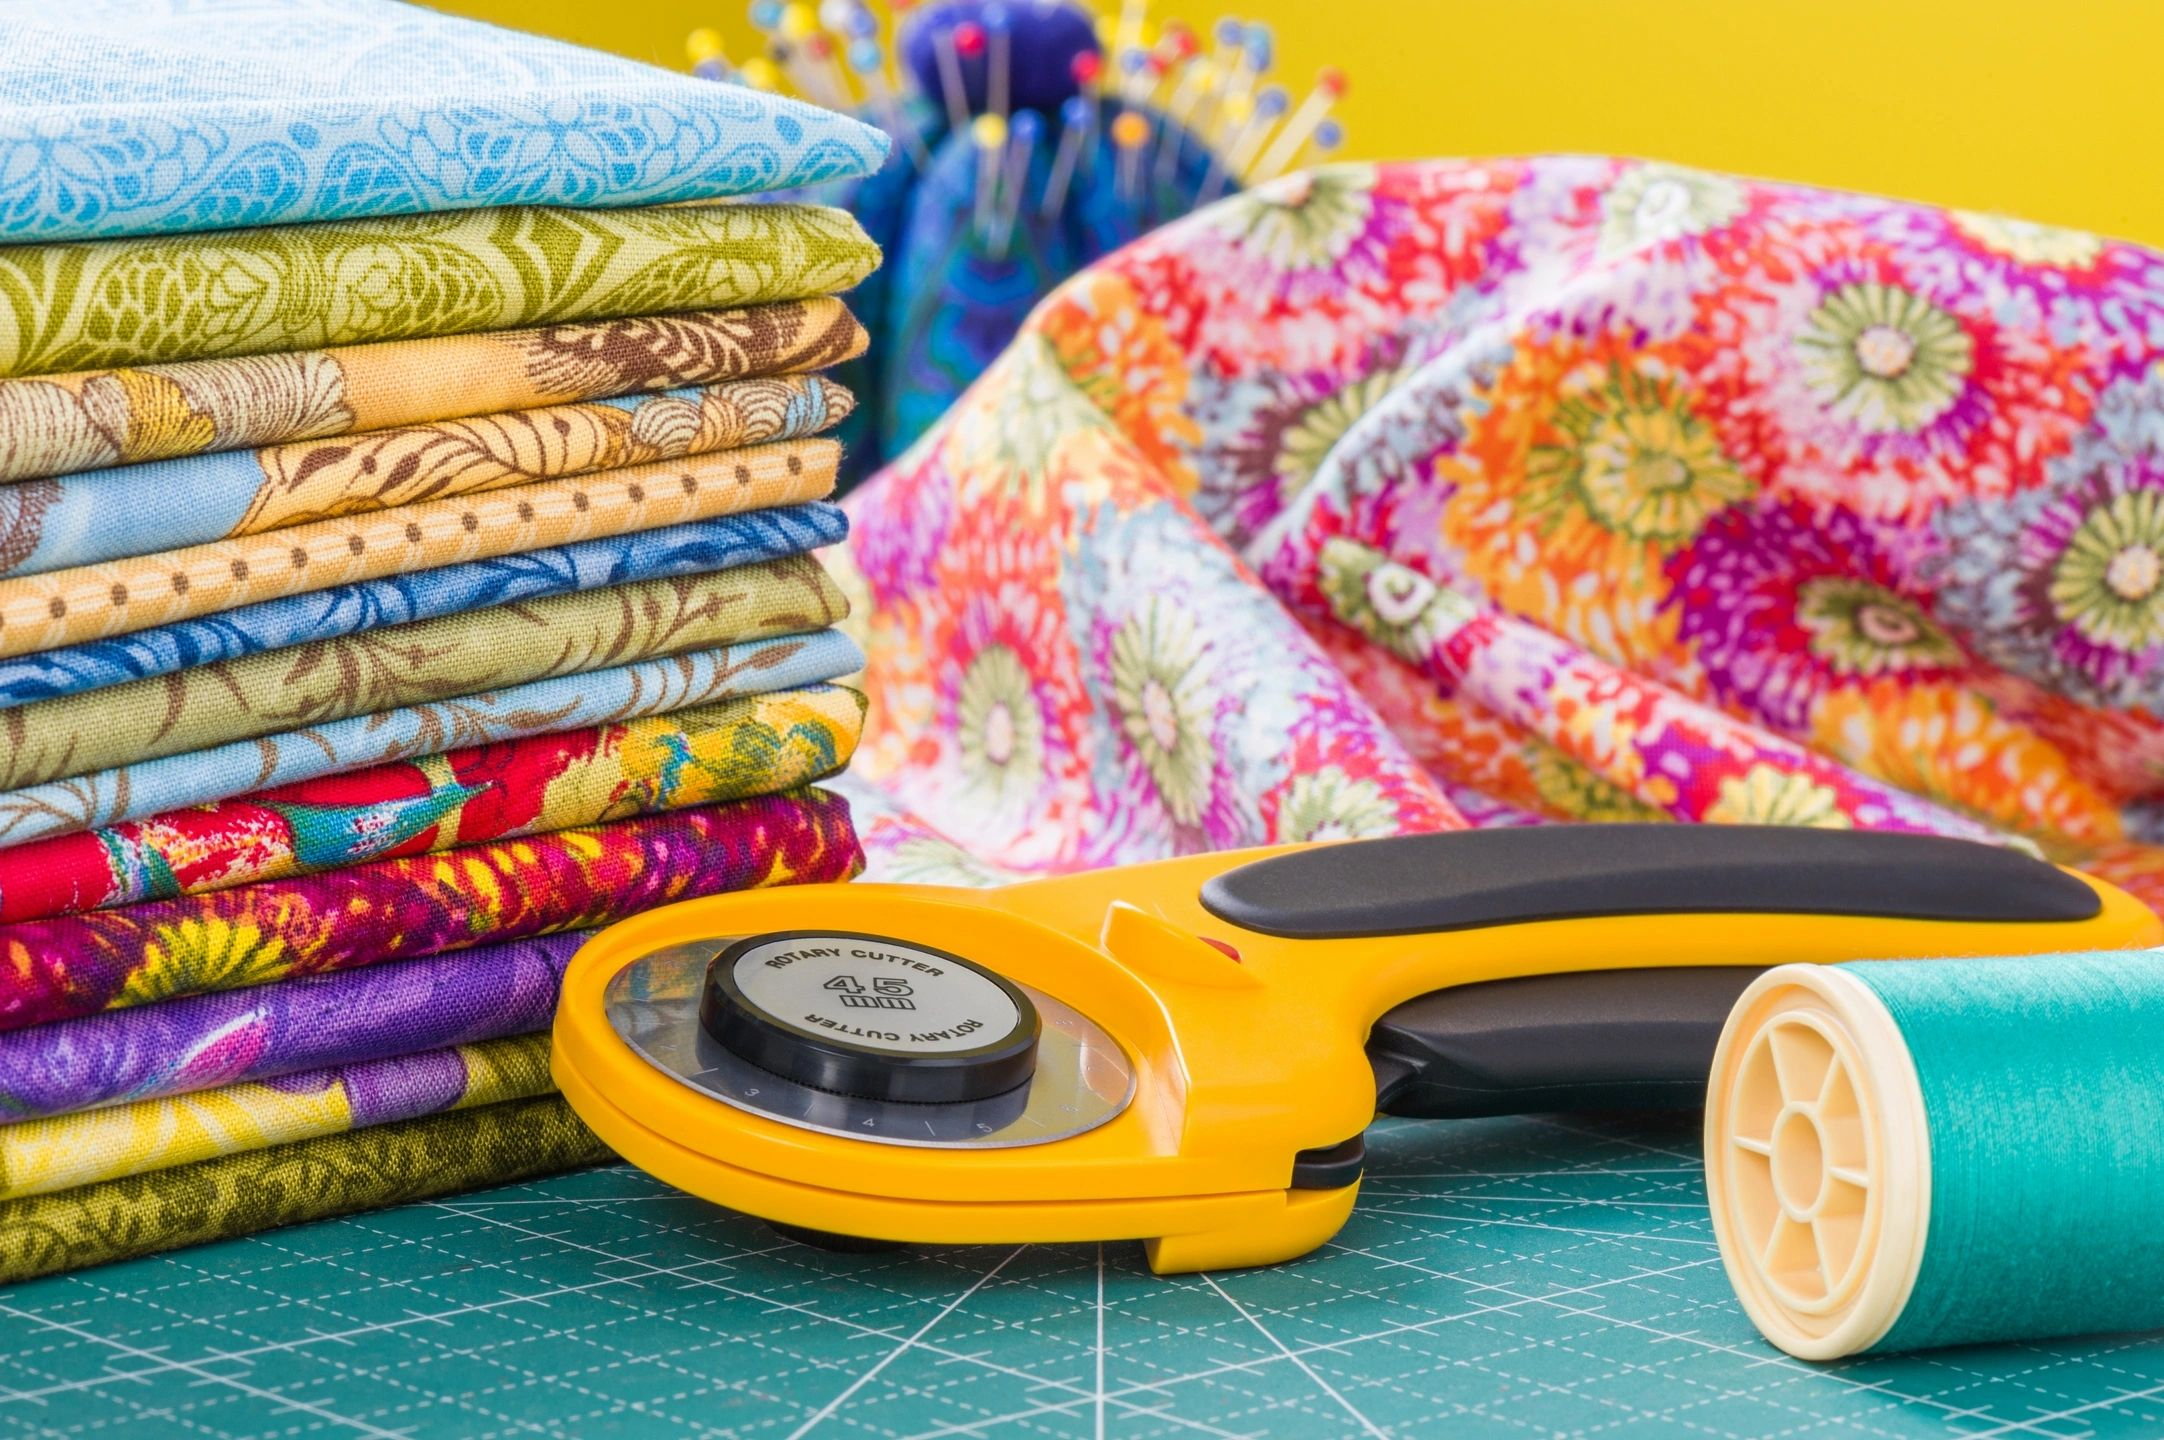 Quilting tools and fabric